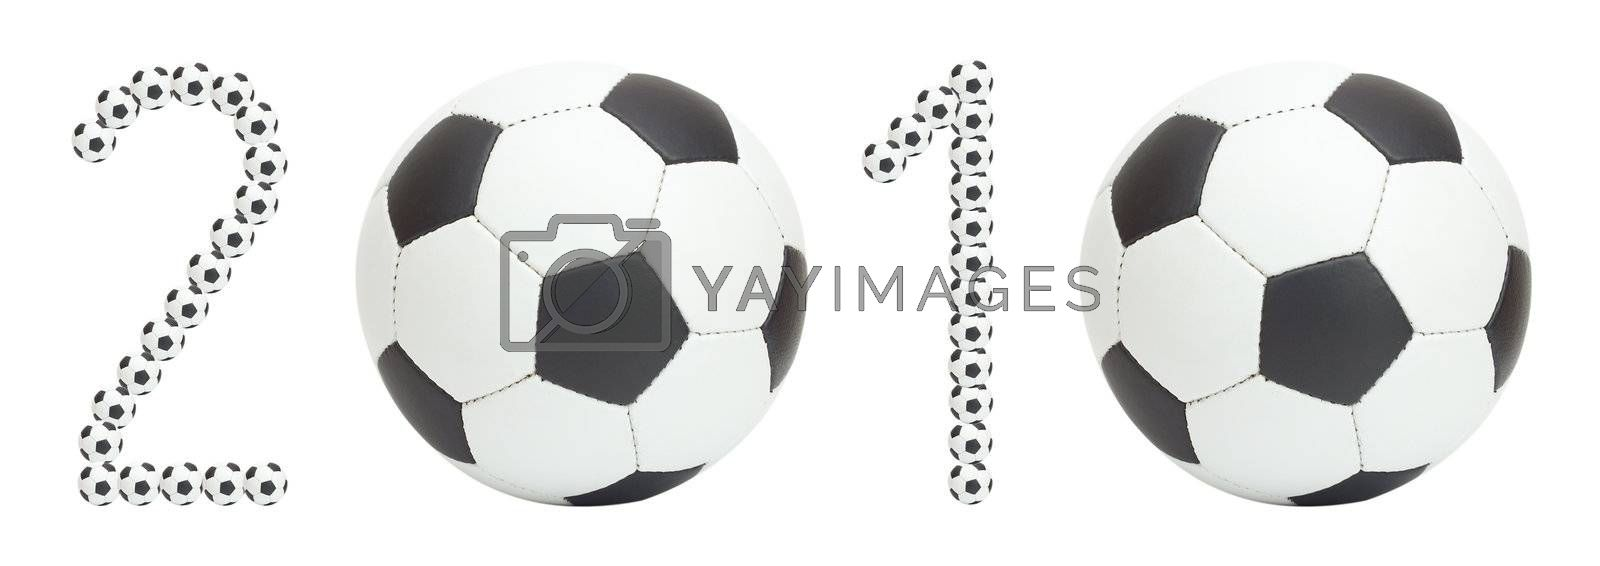 world championship for soccer data, made from balls, isolated on white